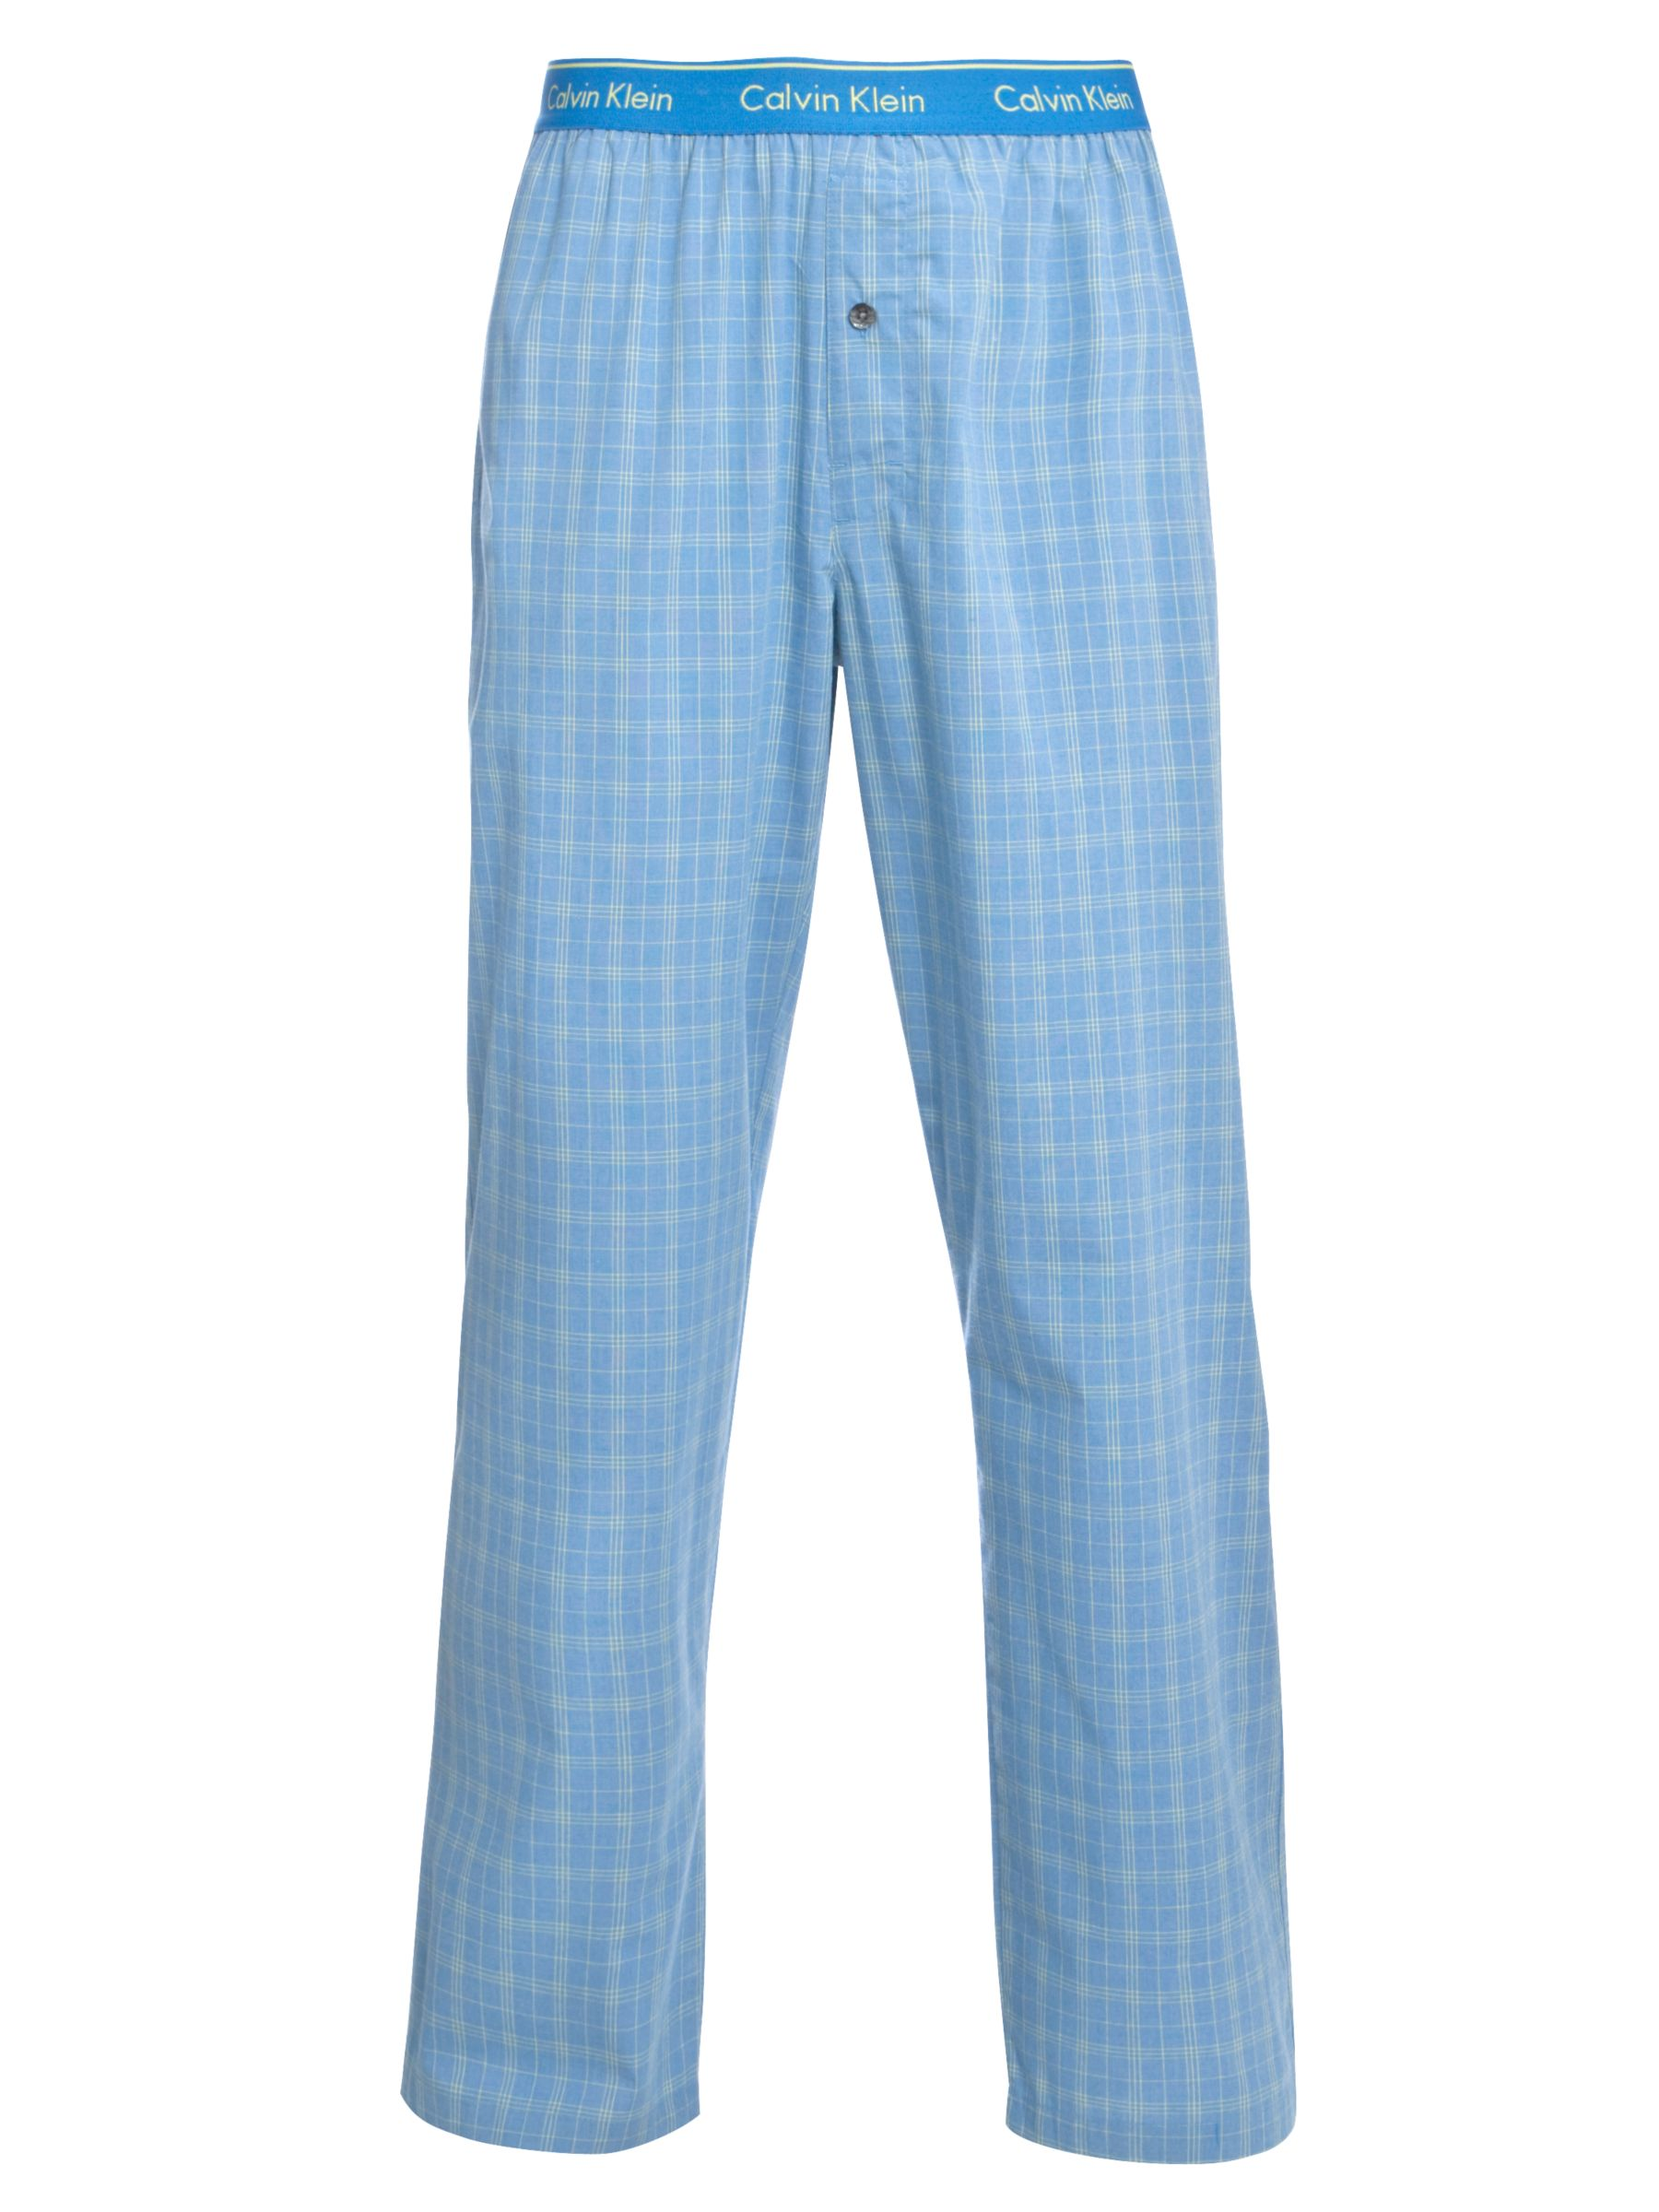 Calvin Klein Terry Check Pyjama Pants, Blue